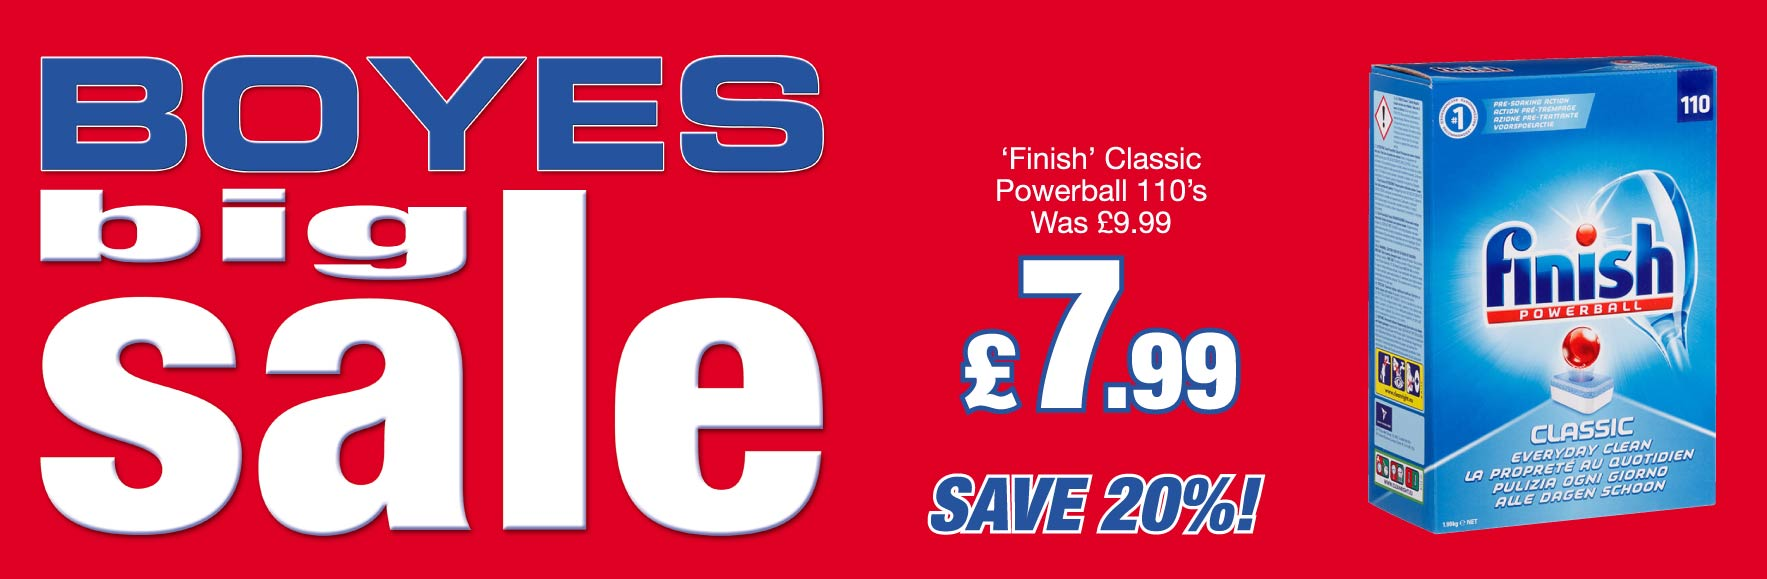 Finish Classic Powerball 110's. Was £9.99 NOW £7.99!